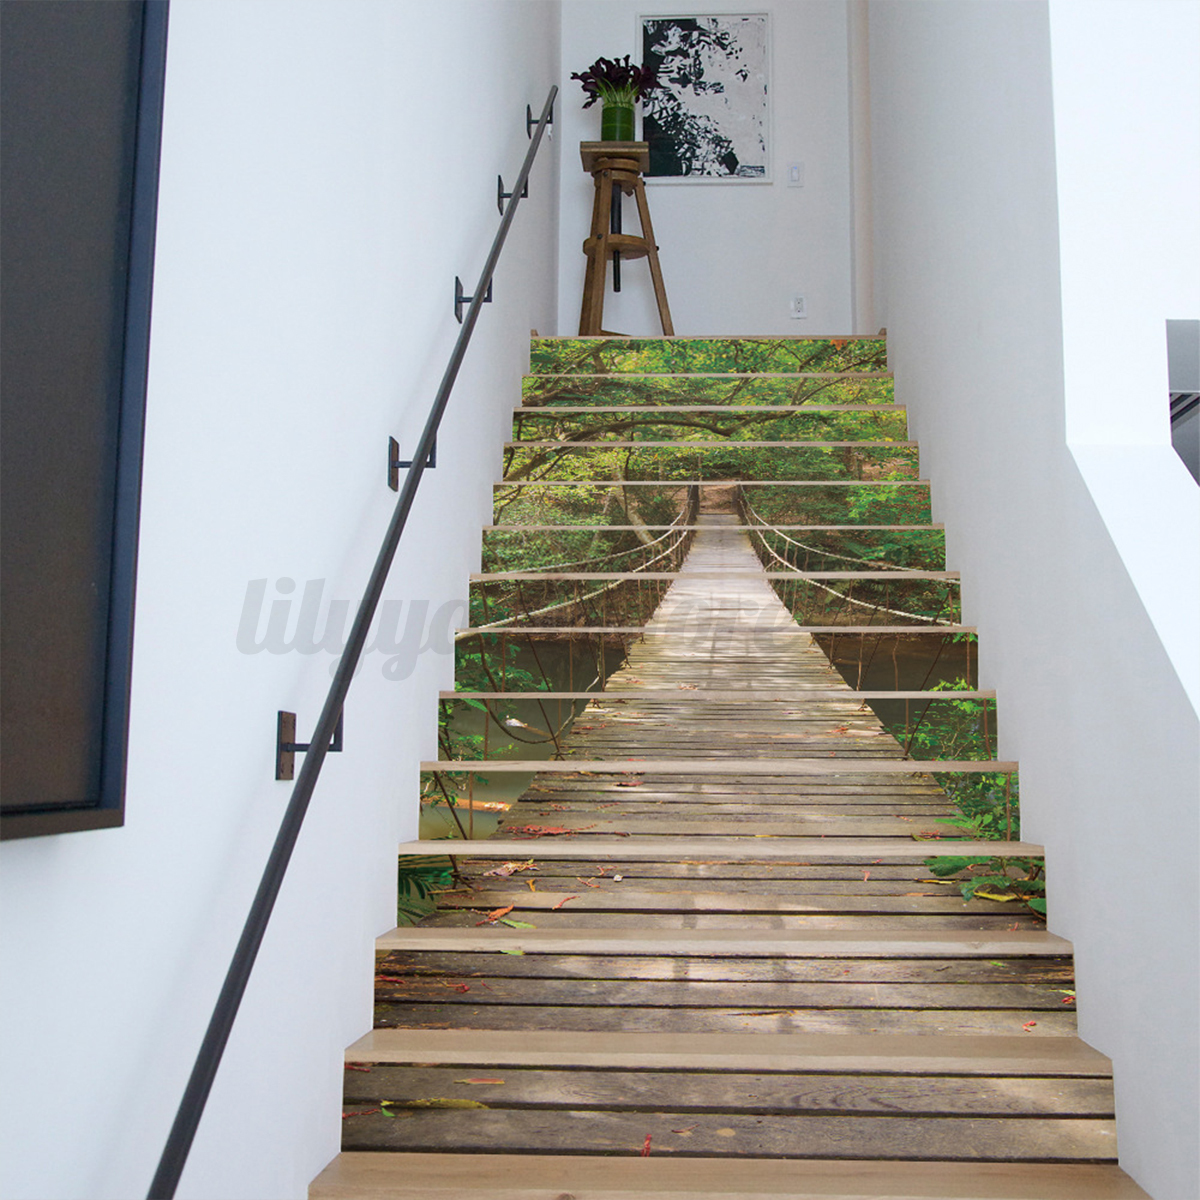 13pcs 3d landscape stair risers decor photo mural decal wallpaper sticker diy 2 2 of 7